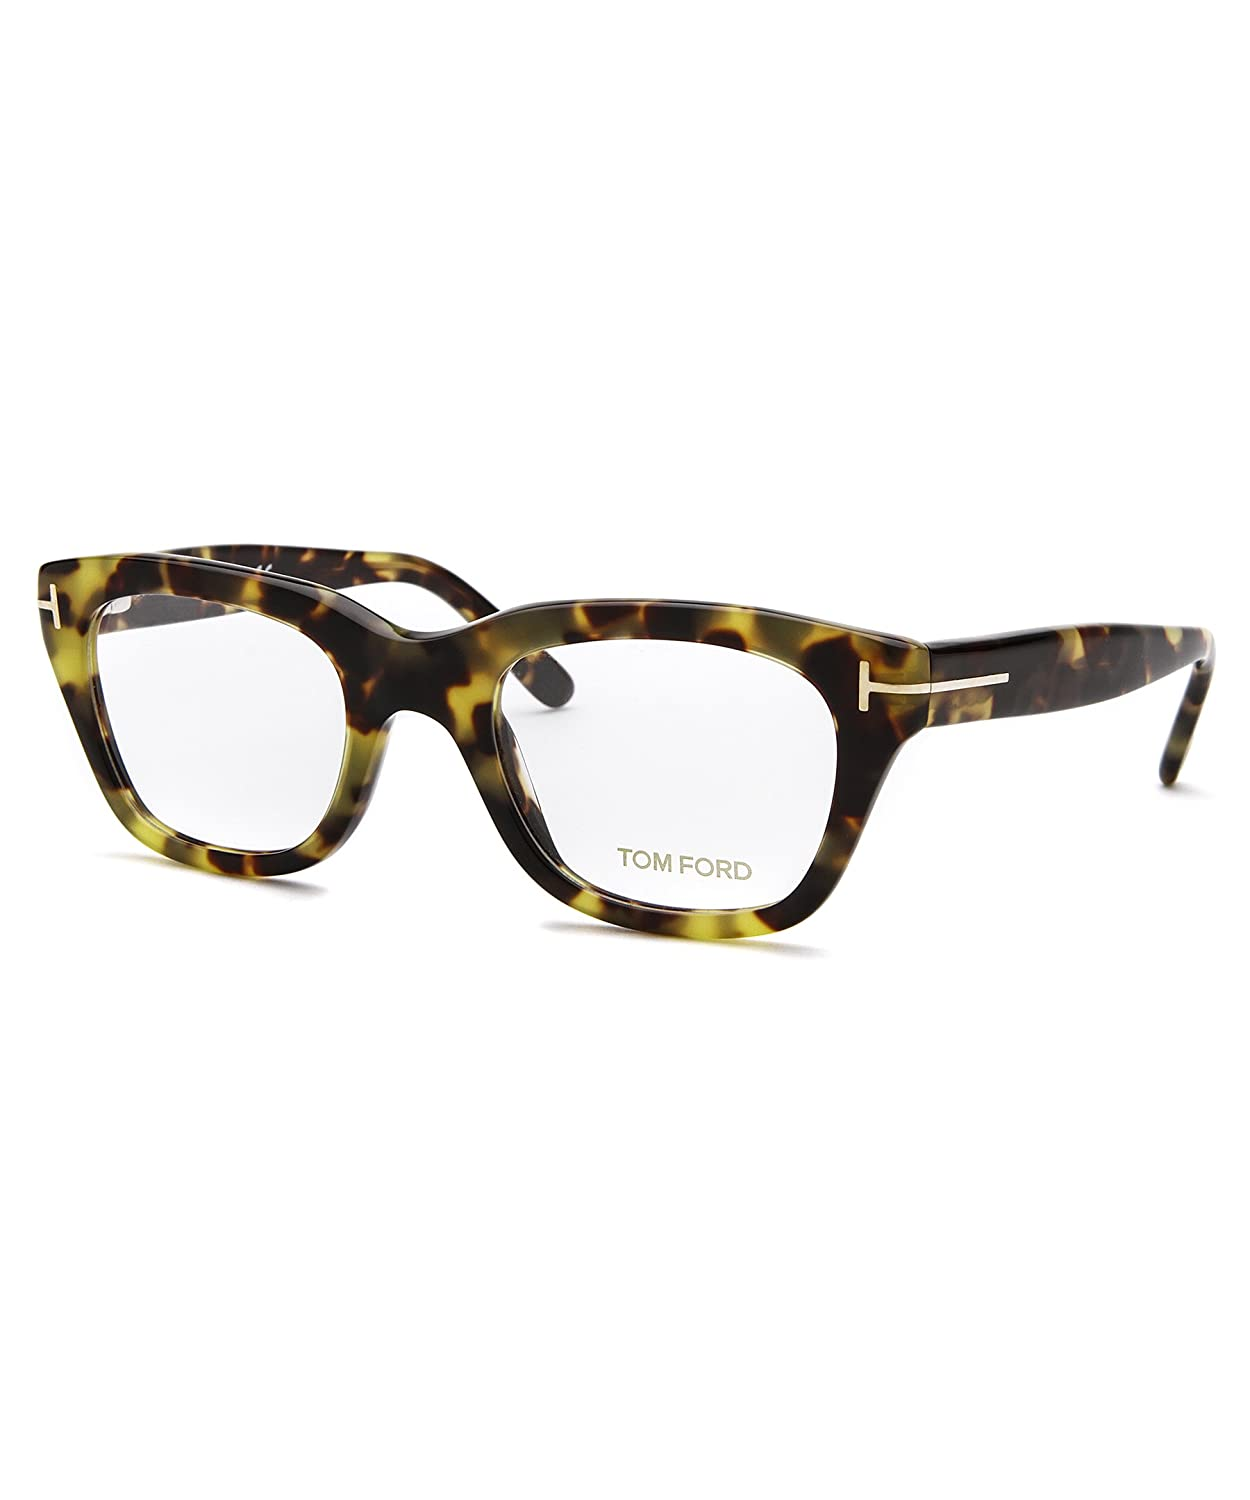 Tom Ford 5178 Eyeglasses FT5178-055-50-21-145